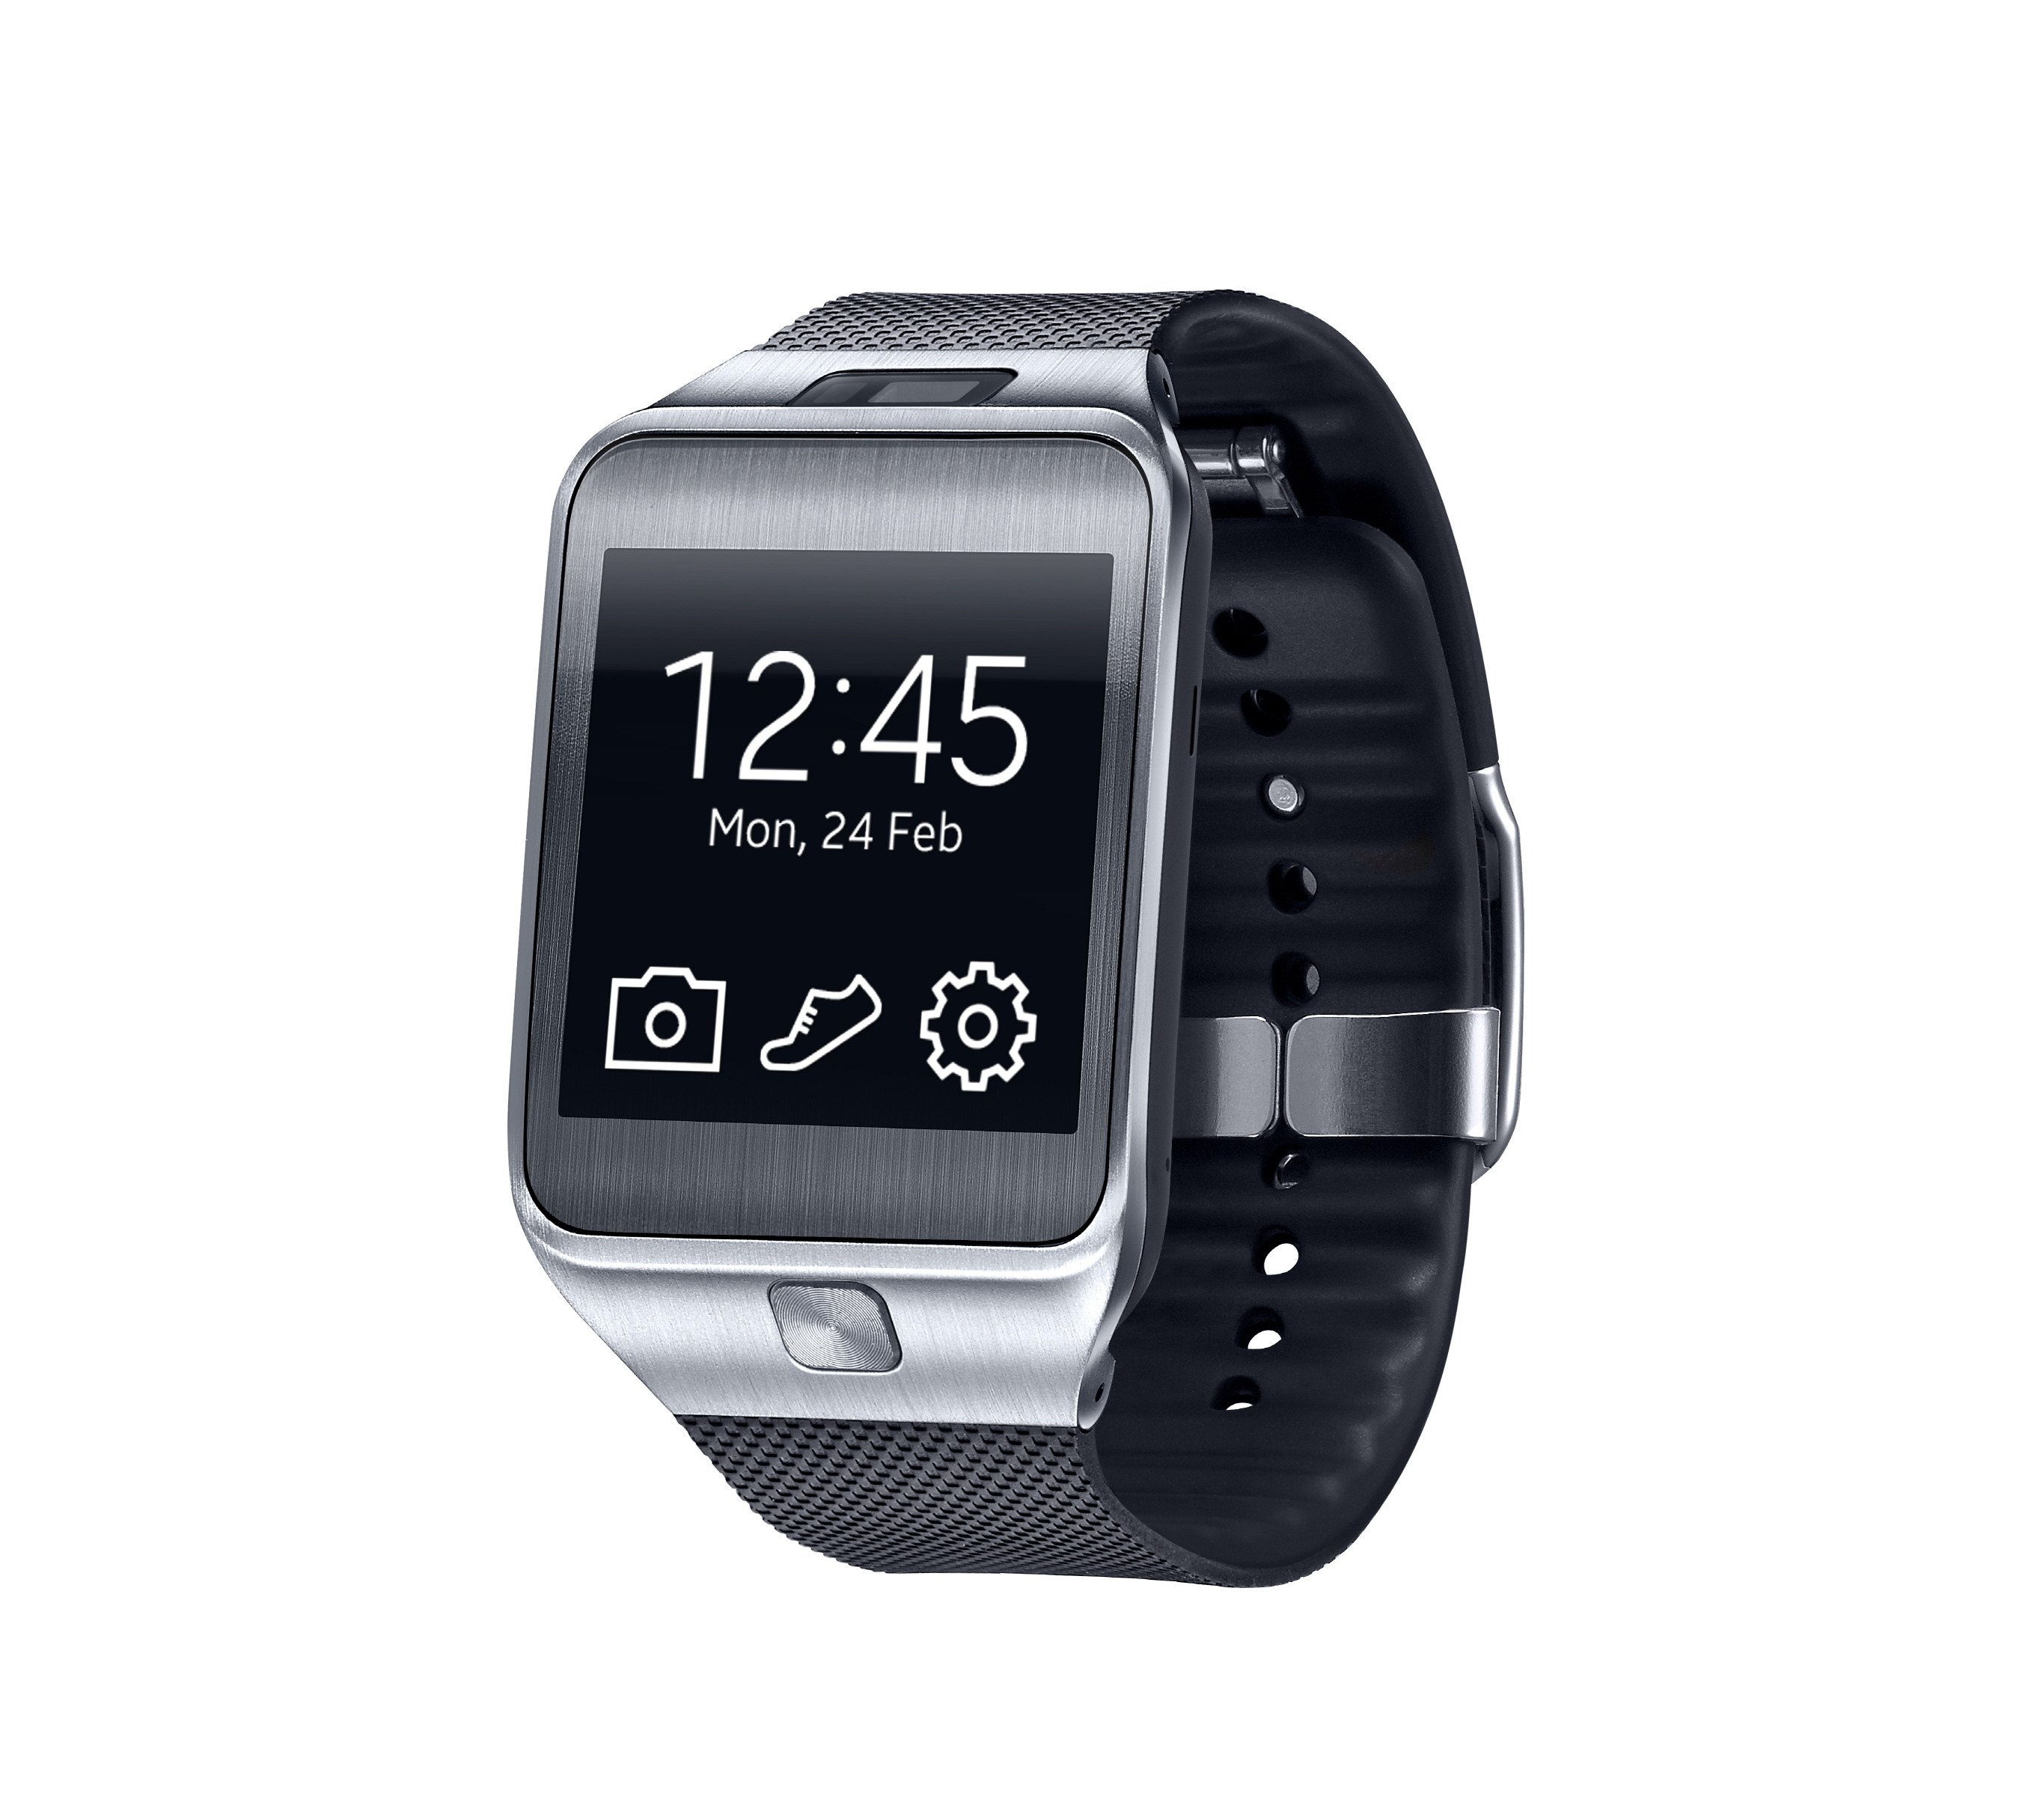 aluminum c watch space photo series reg a gray gps smart h nike cellular apple smartwatch case b watches product